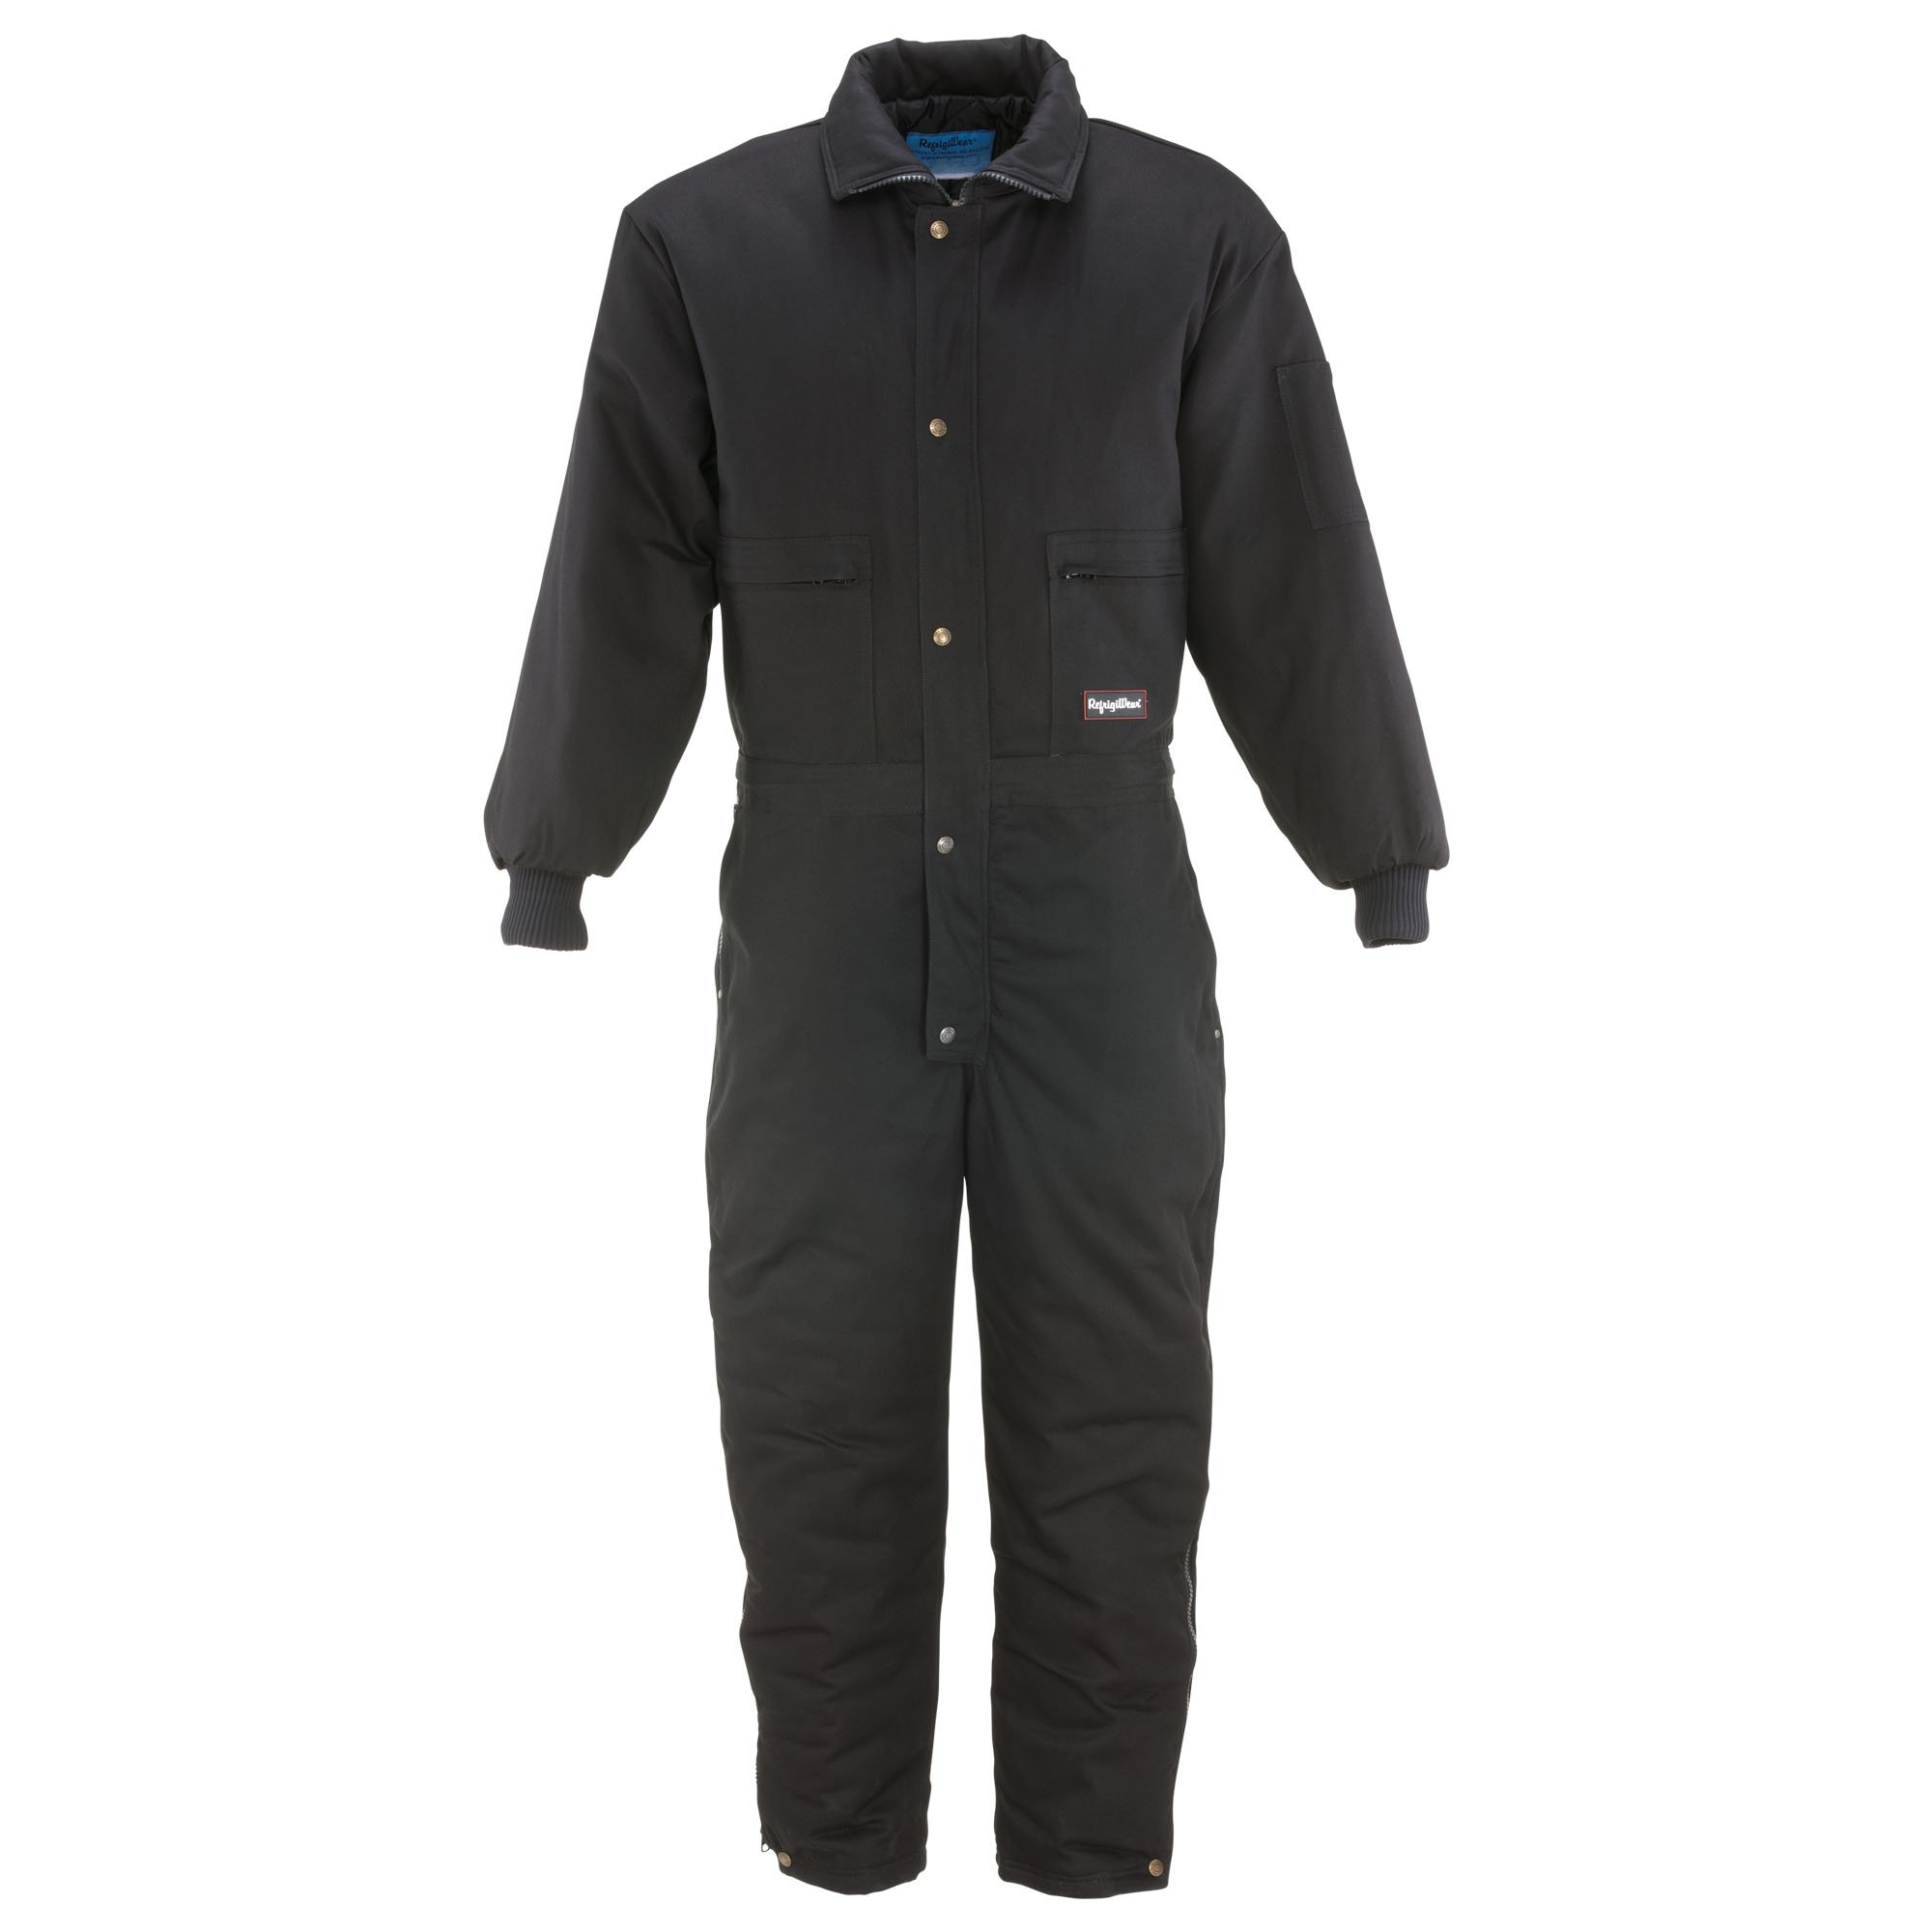 RefrigiWear Men's Comfortguard Coveralls Black Medium Tall